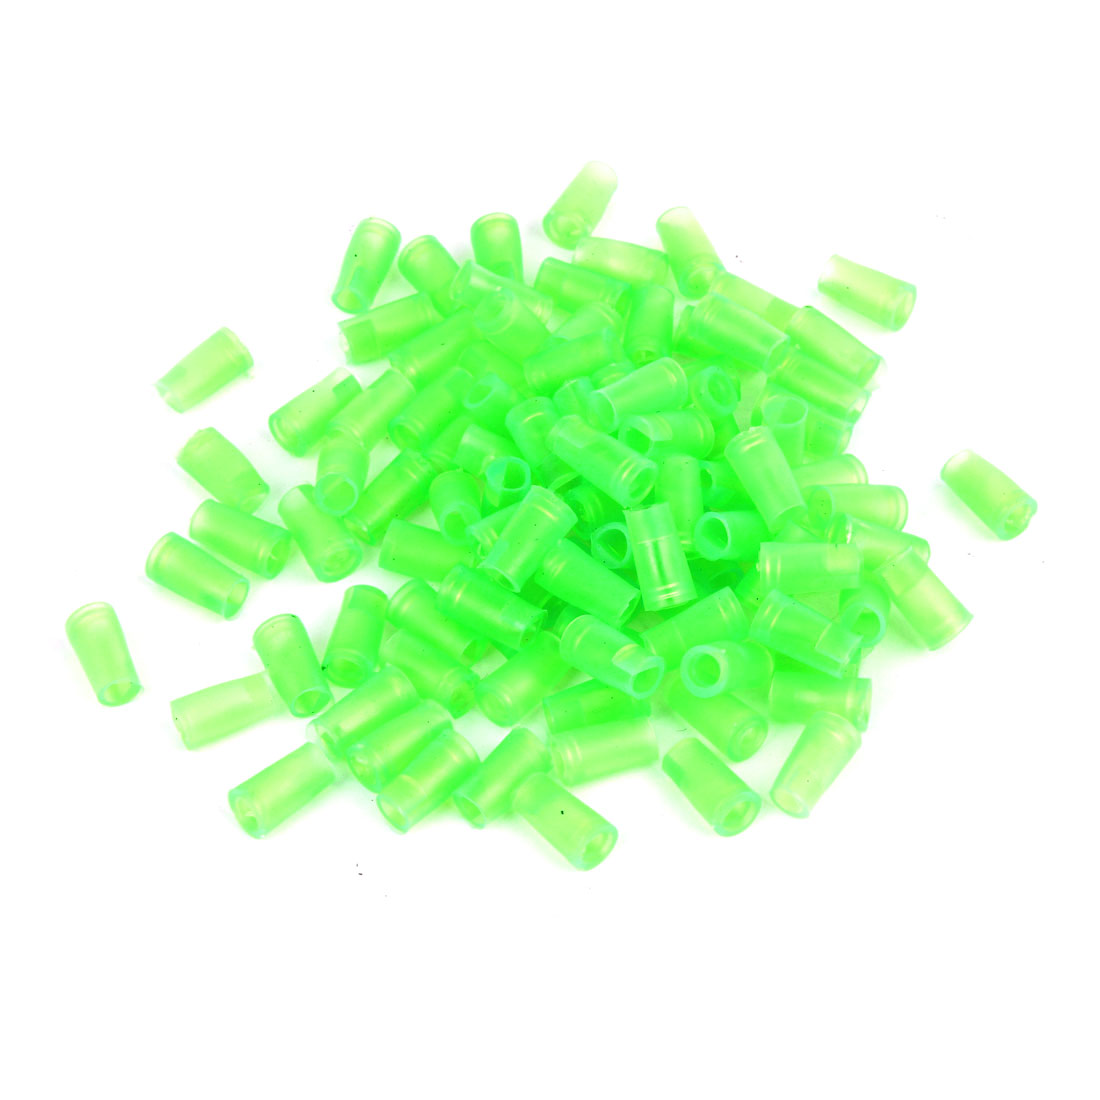 100 Pcs Green 6mm Dia PVC Crimp Terminal Cover Sleeves for Motorcycle